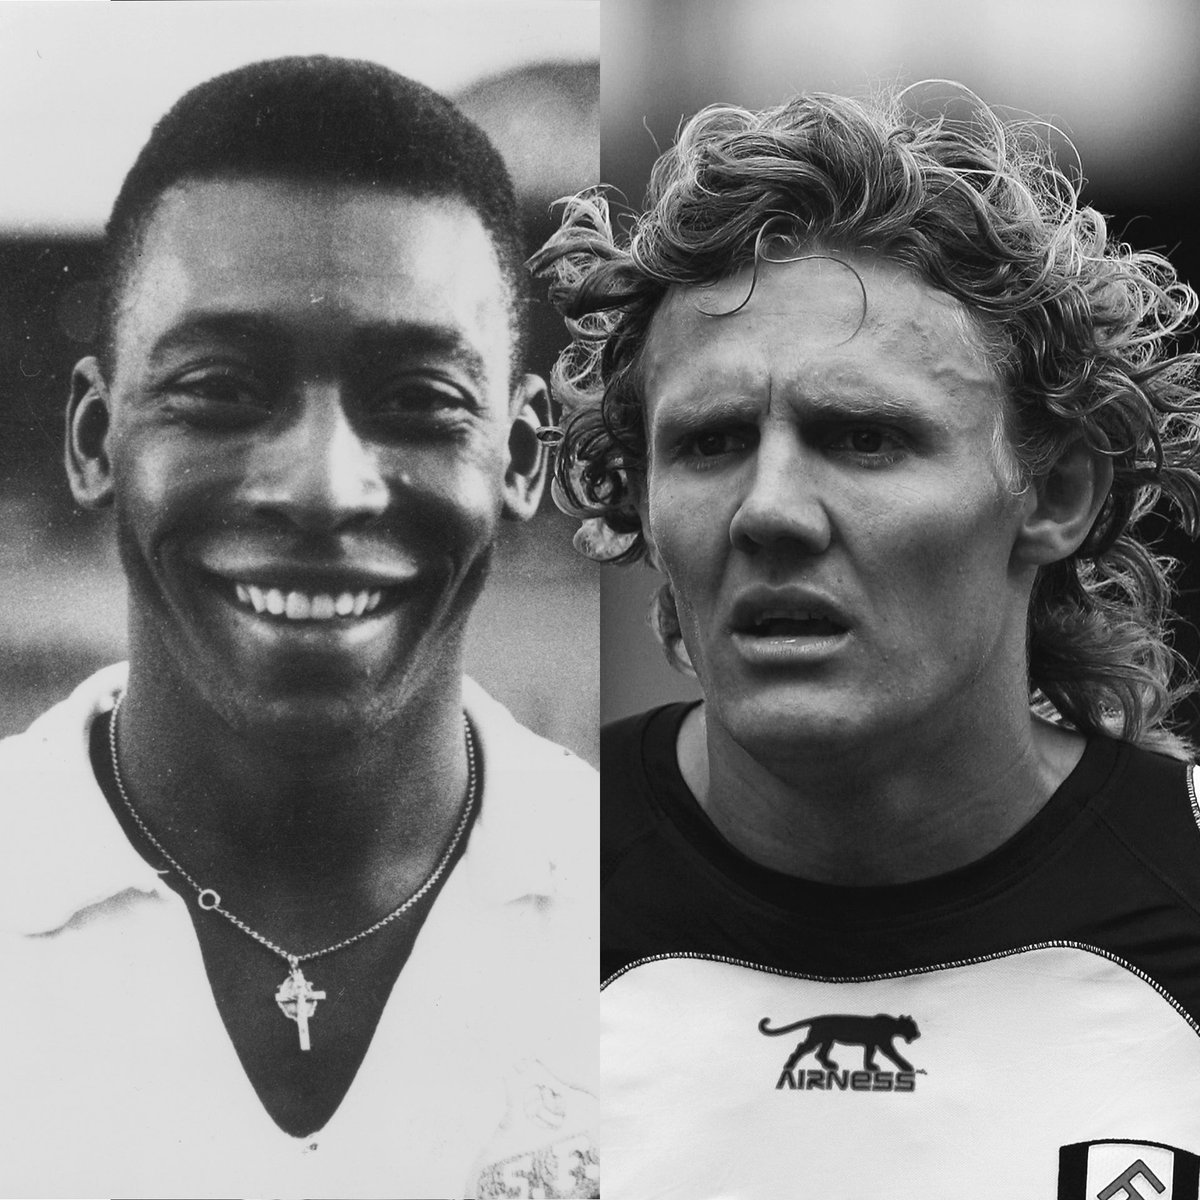 Happy Birthday to two of the most technically gifted footballers of all-time! 🎂 #JimmyBullardDay   ...but who was the better player? 💭   🔁 for Pele  ❤ for Bullard